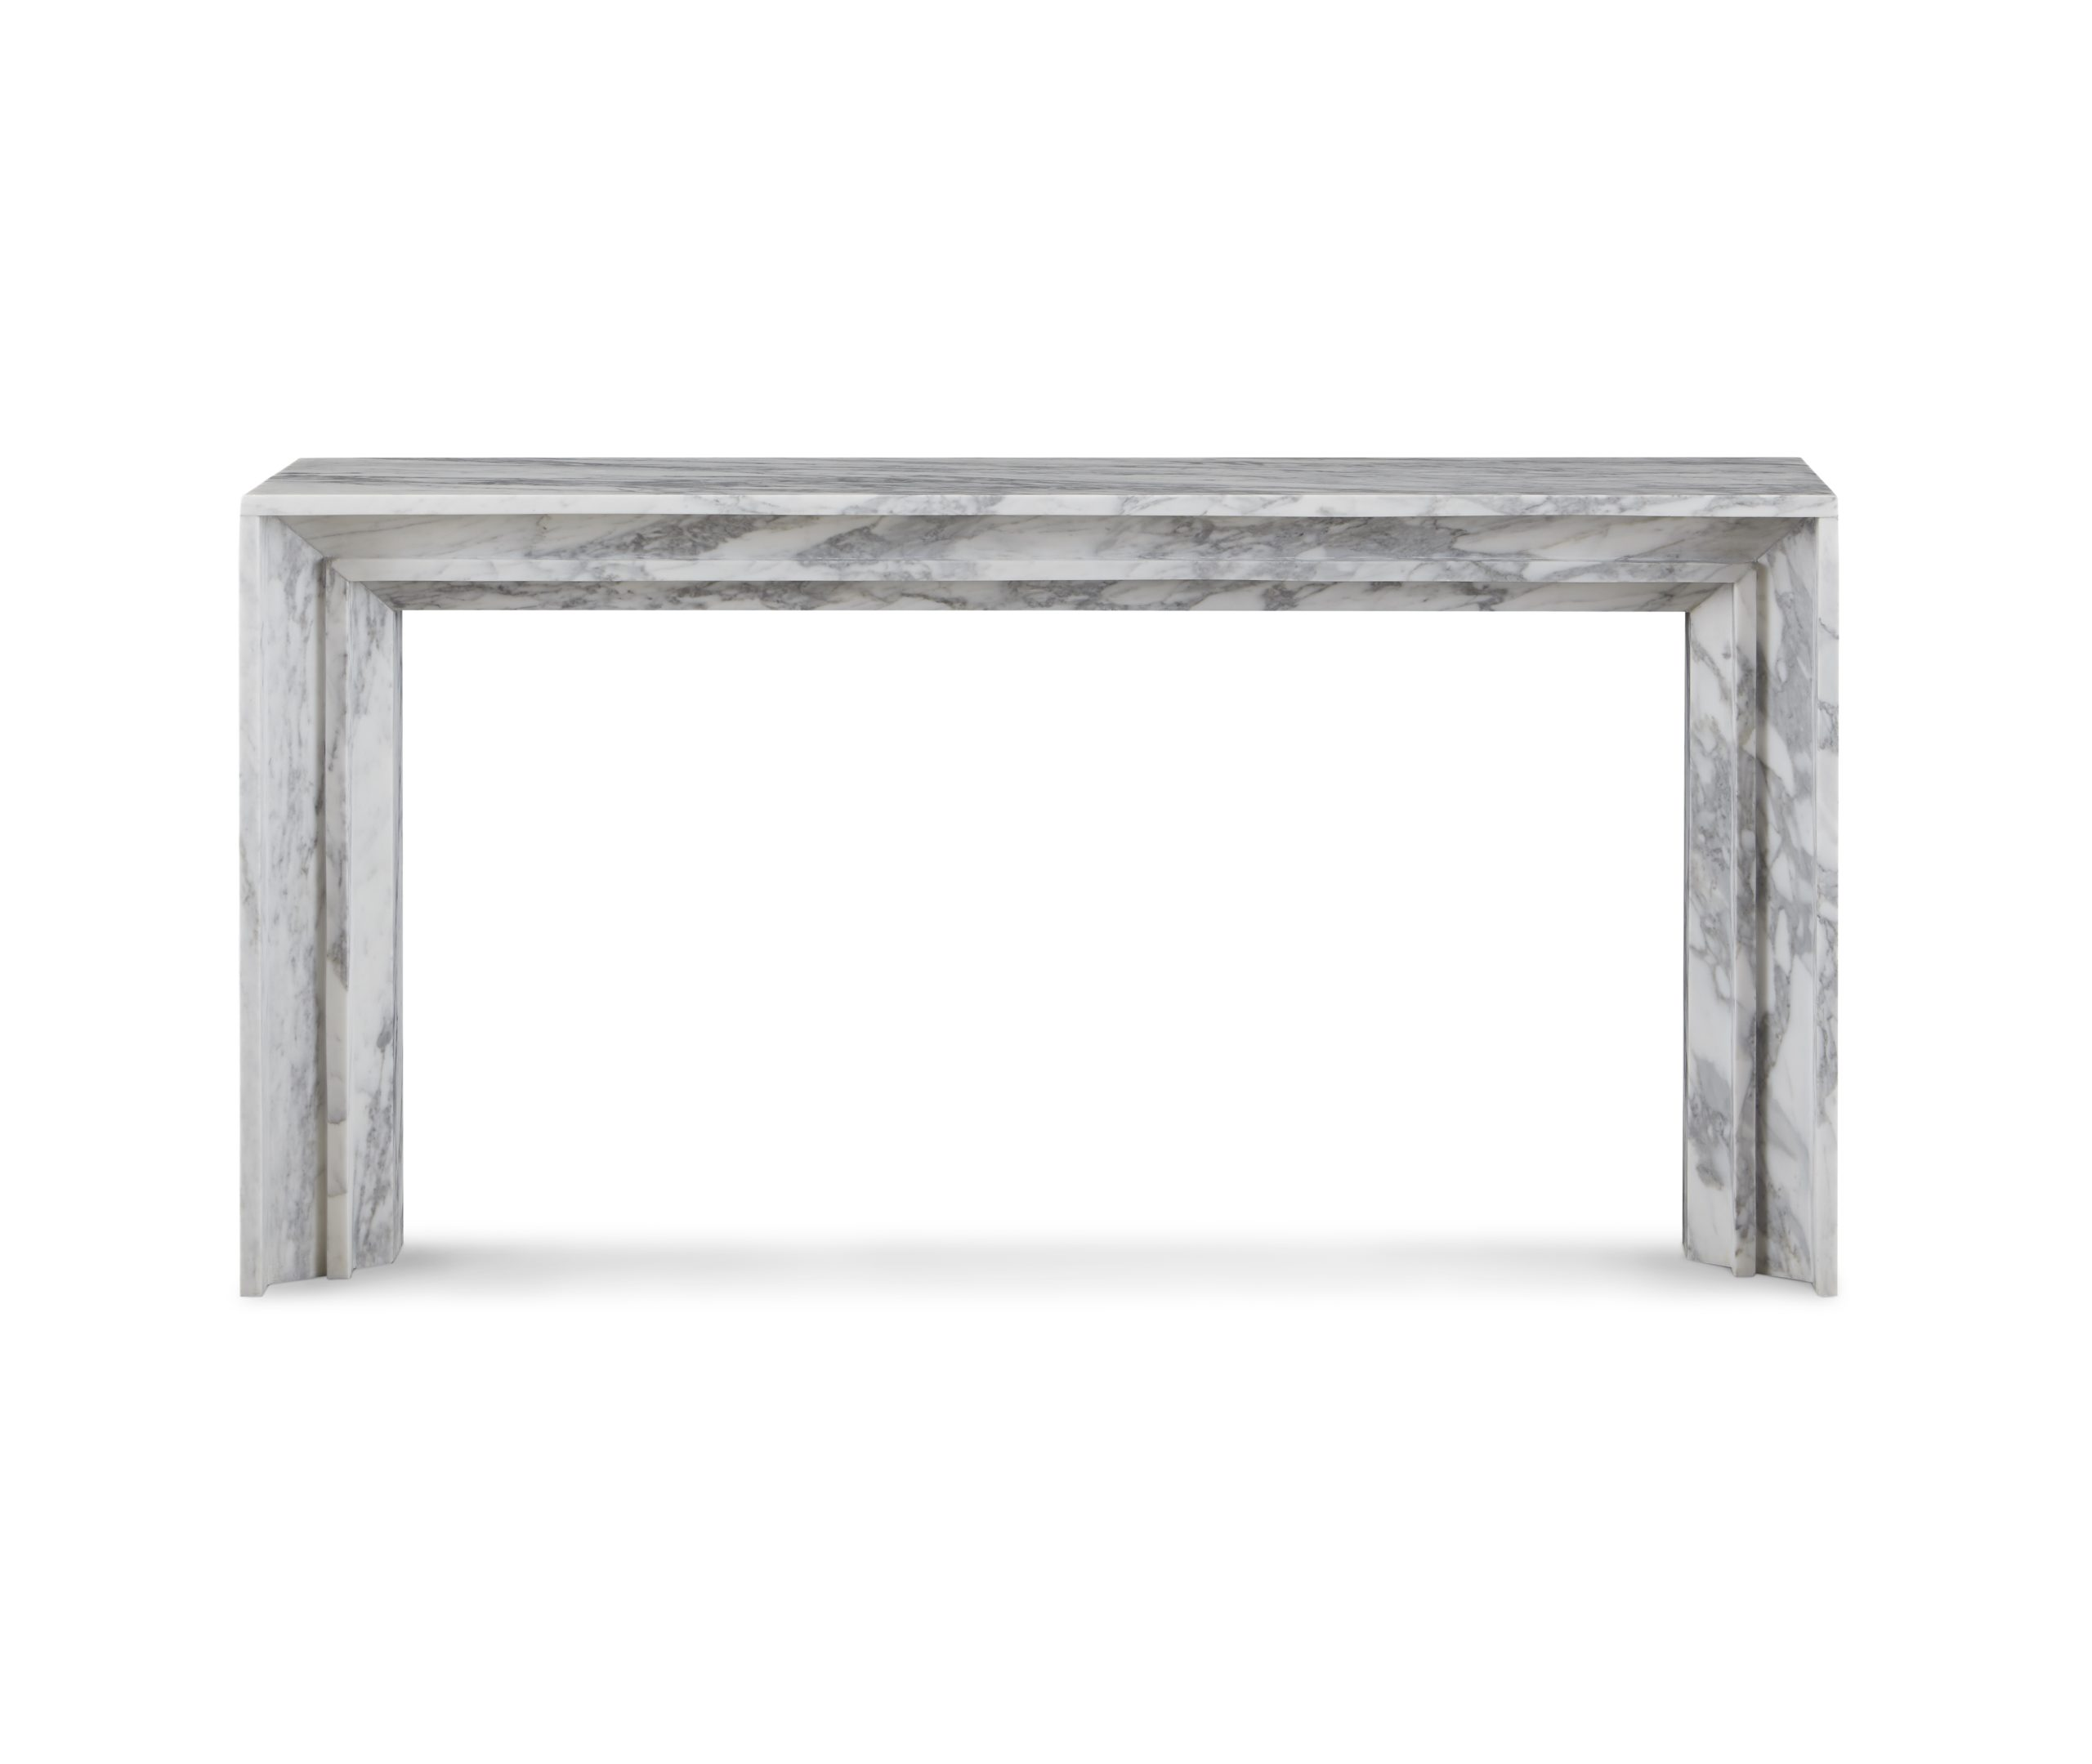 Baker_products_WNWN_angelo_console_BAA3063_FRONT-scaled-2